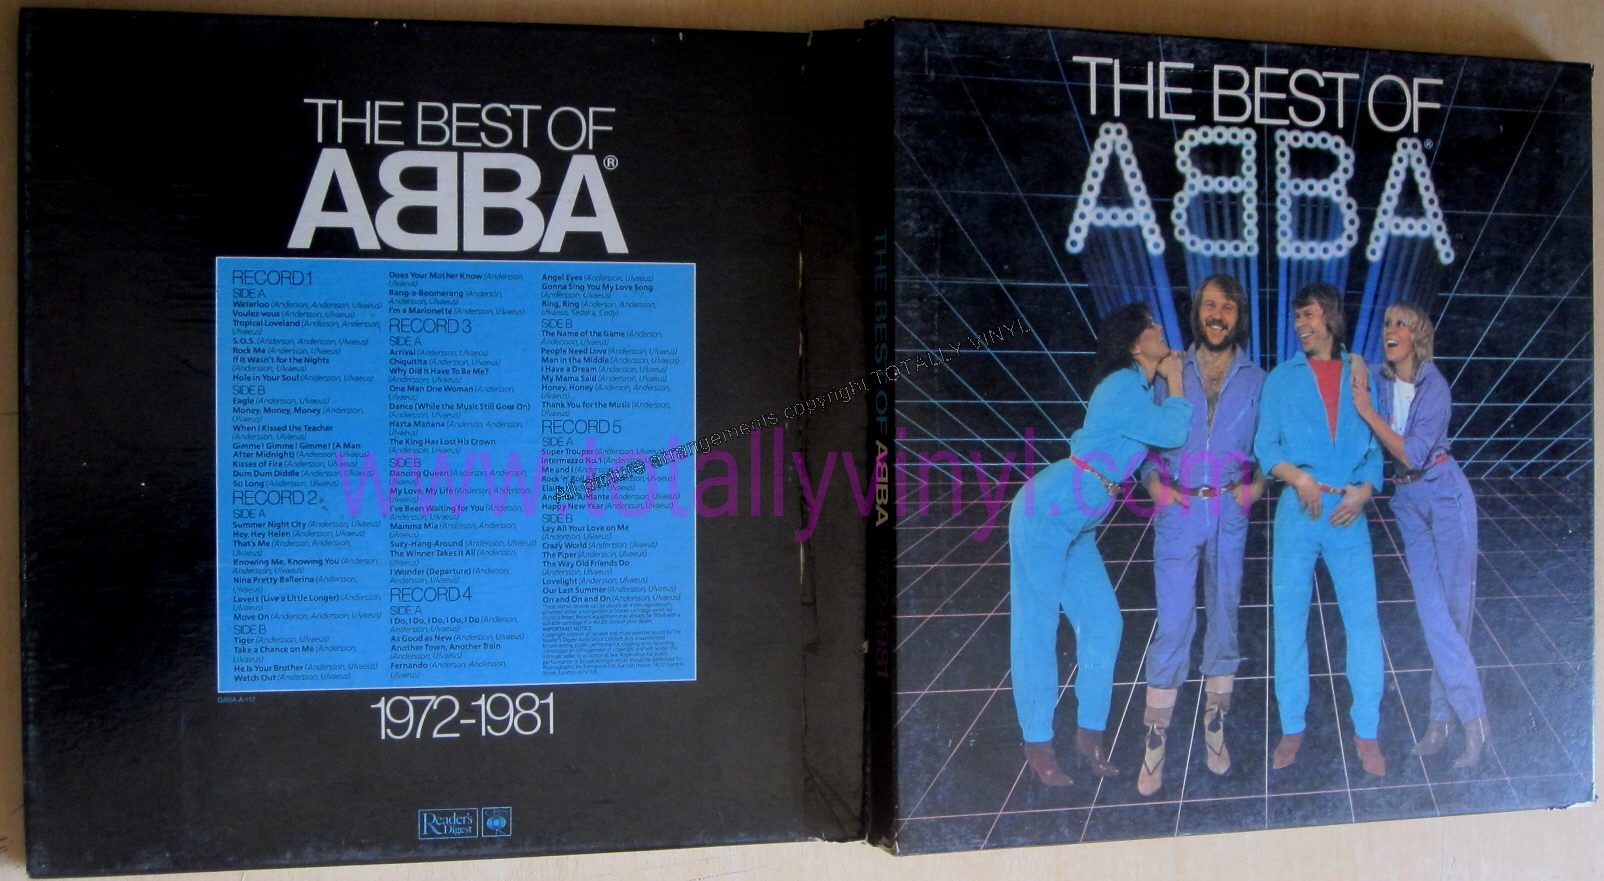 Totally Vinyl Records Abba The Best Of Abba 1972 1981